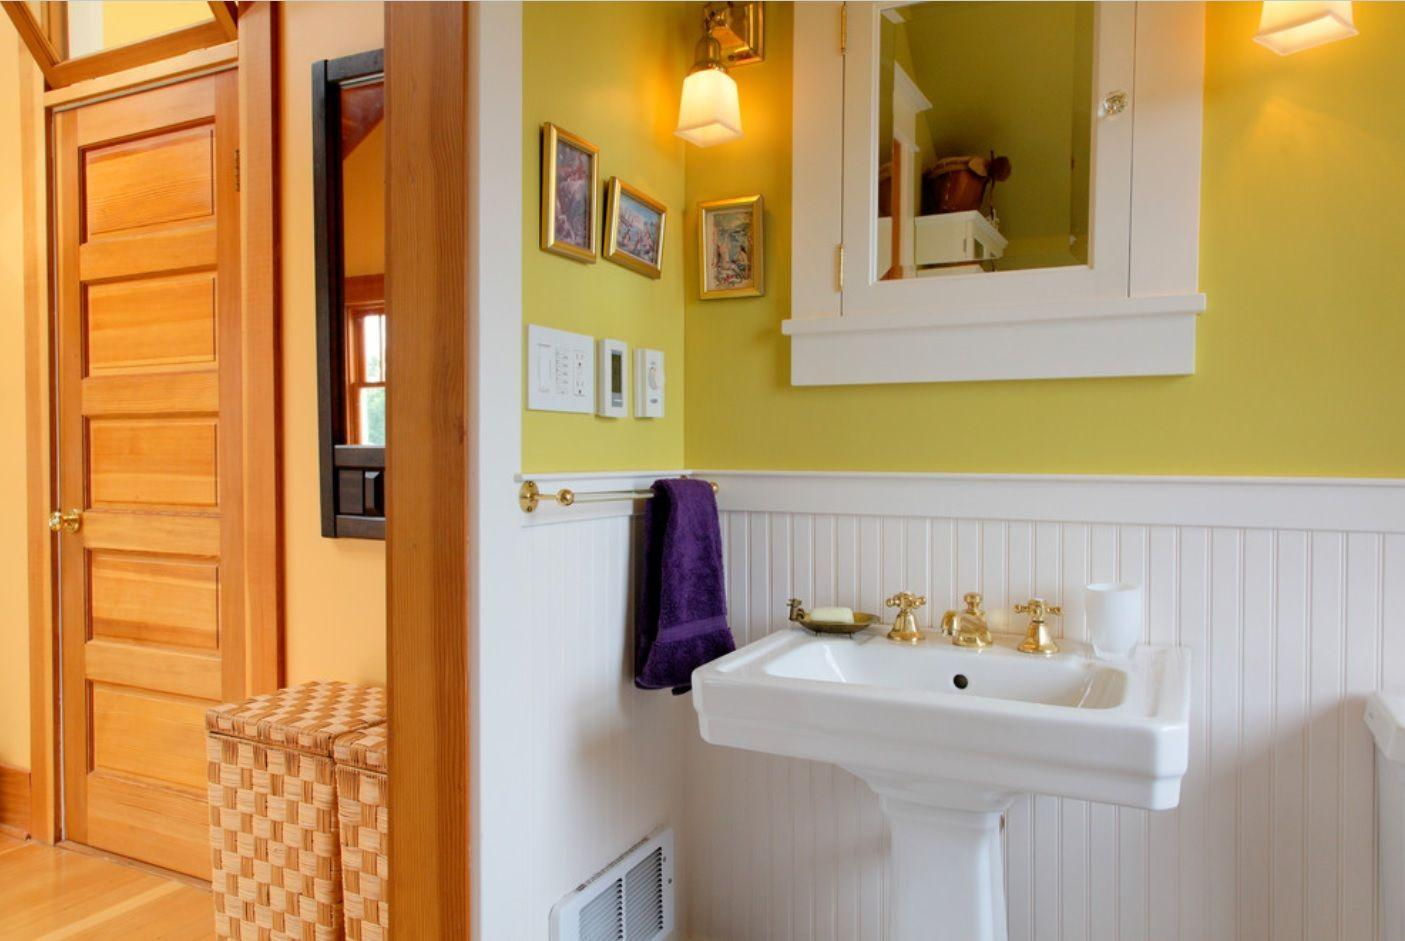 wainscoting around bathroom sink